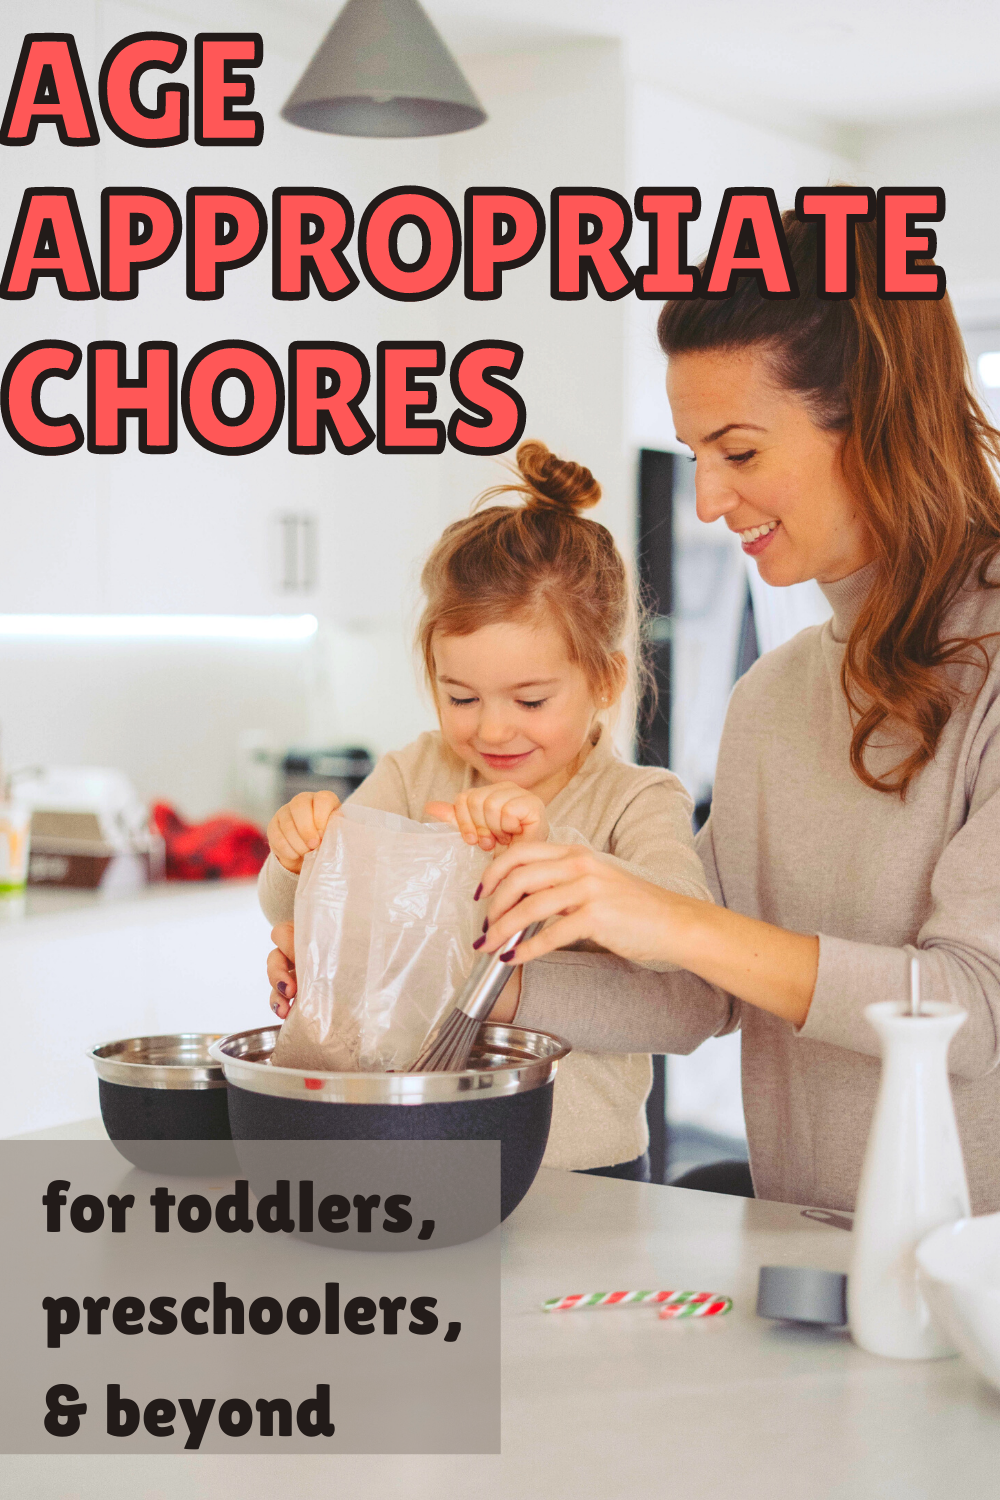 Age Appropriate Chores for Toddlers, Preschools & Beyond